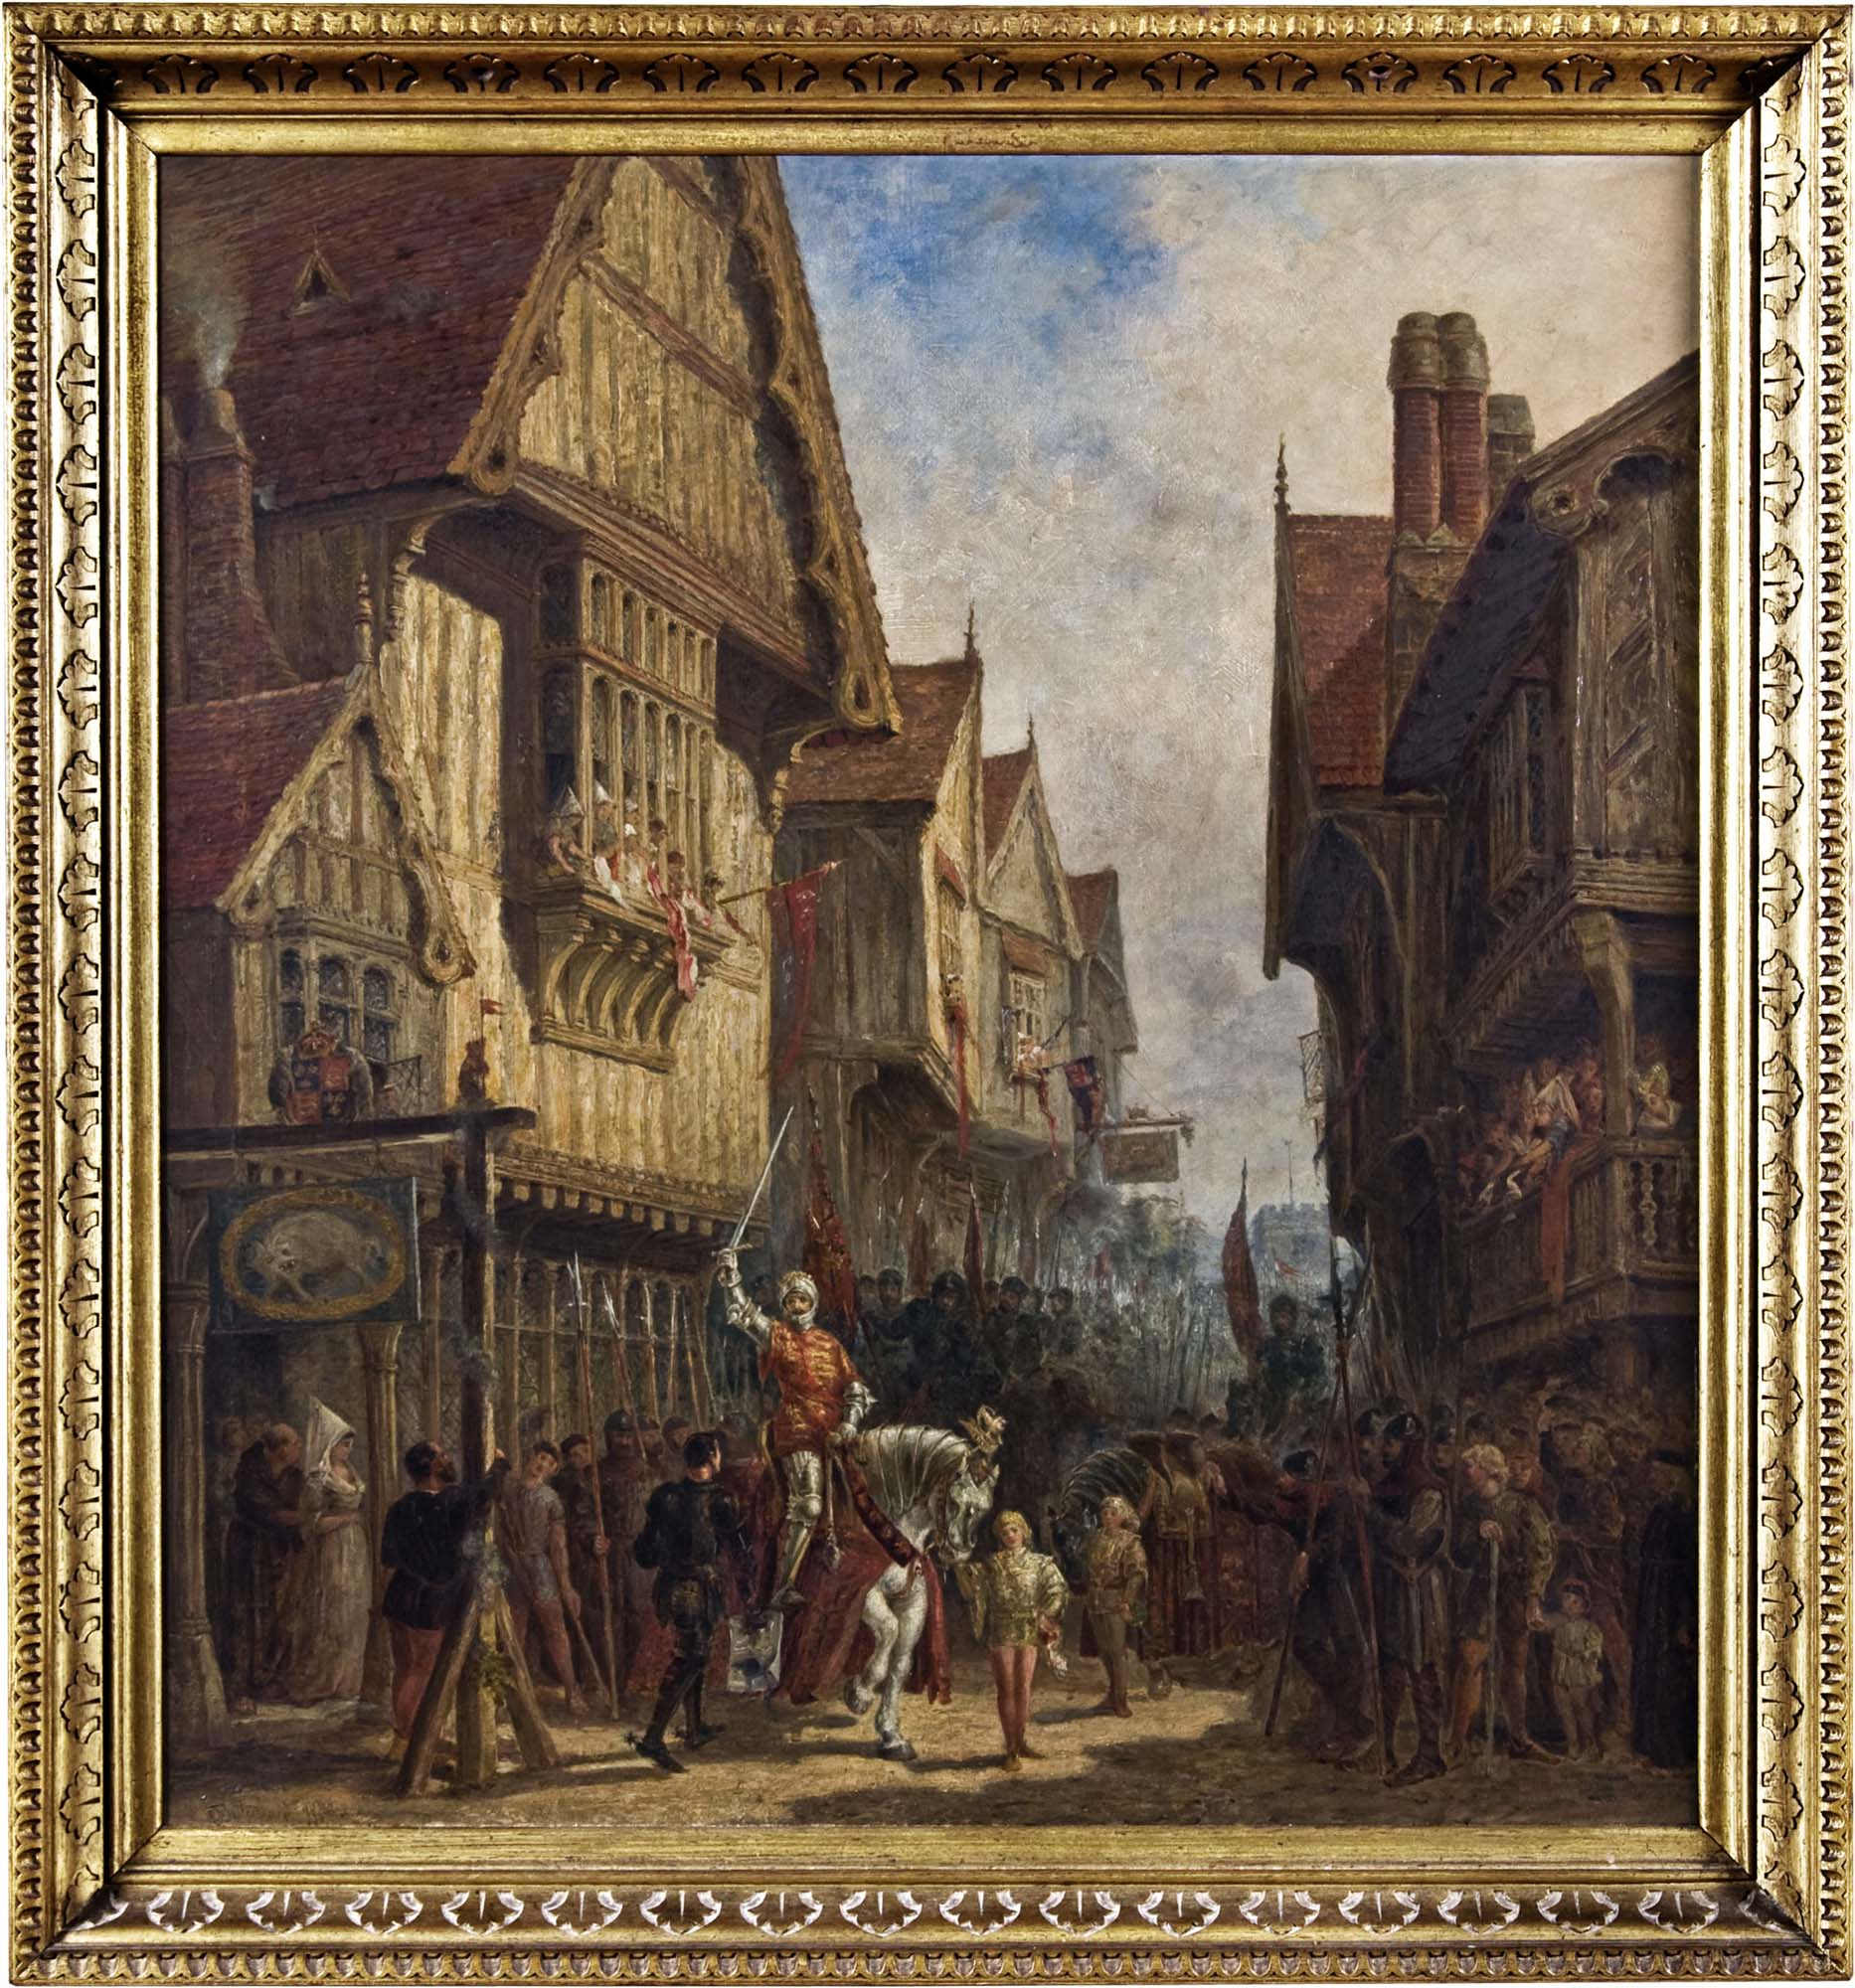 Richard III outside the Blue Boar Inn in Leicester. Oil on canvas, painted by Leicester-born artist John Fulleylove in 1880. - From the collections of Leicester Museums